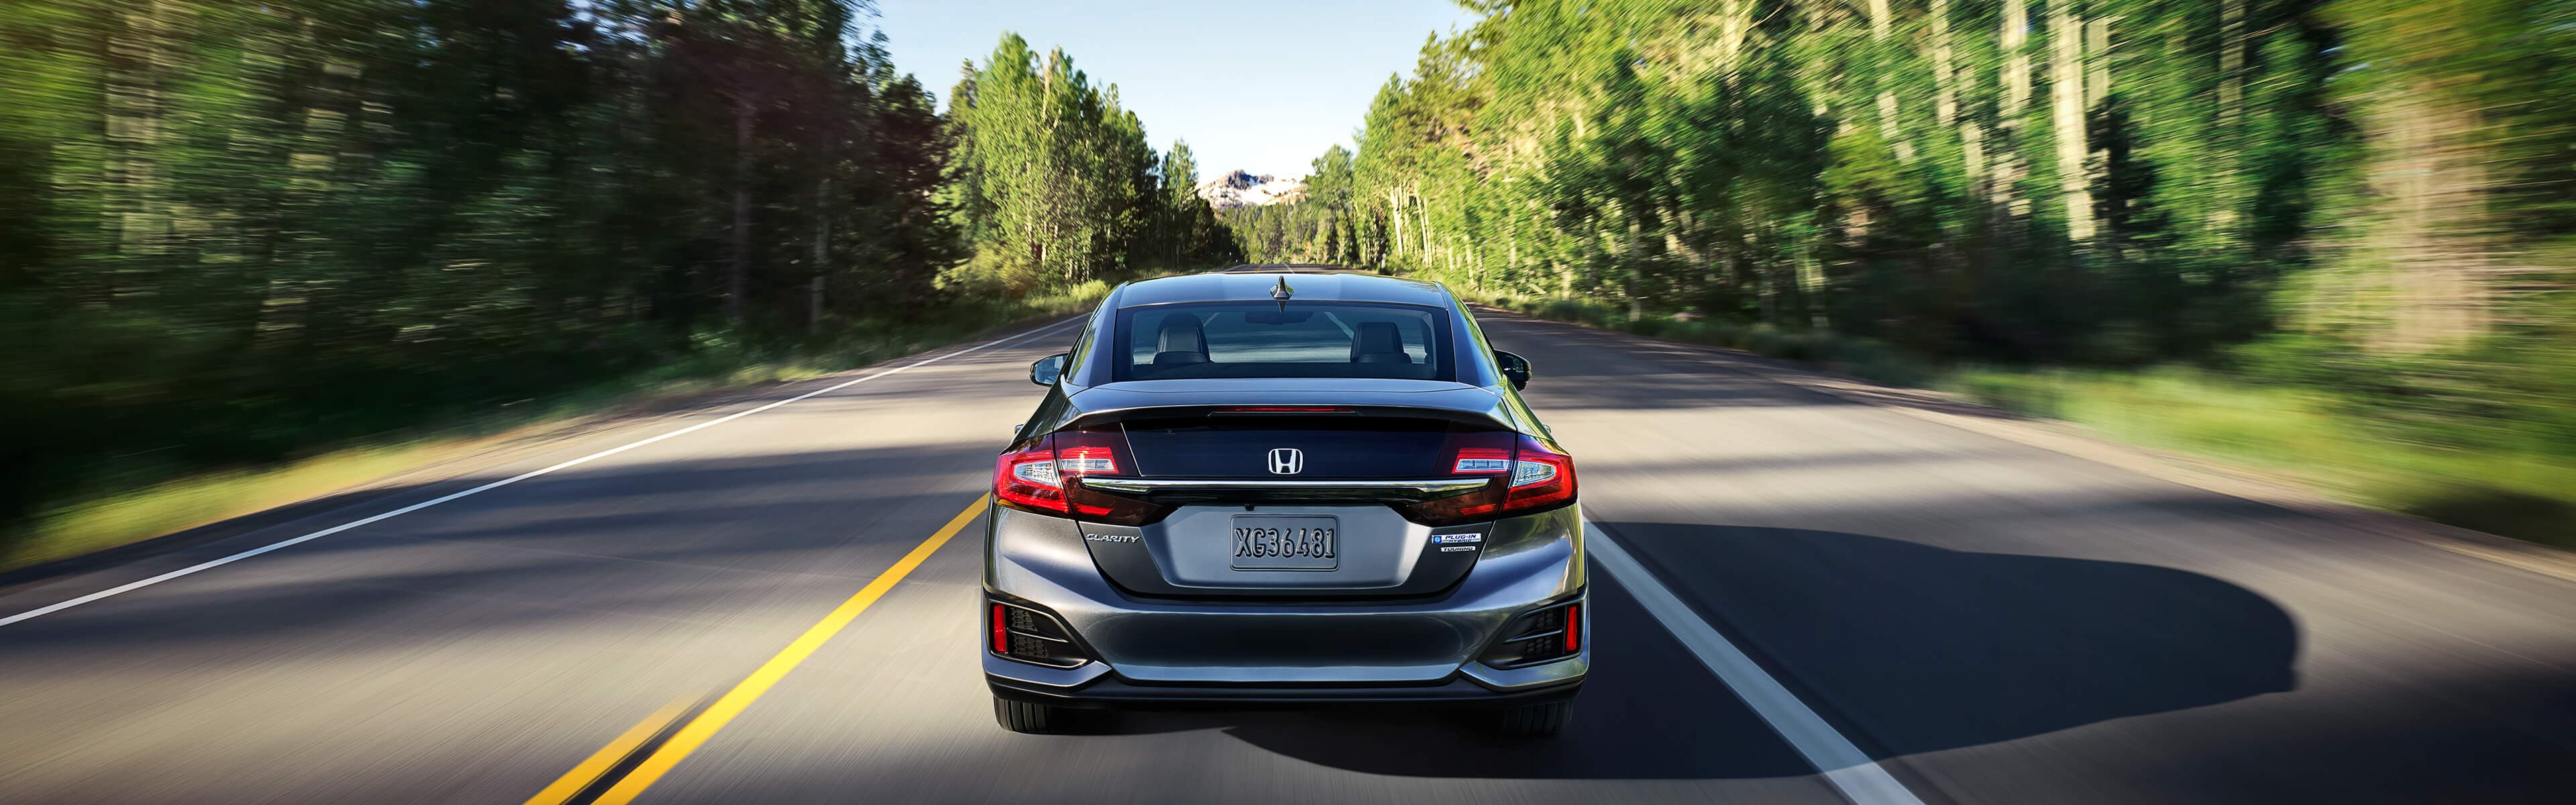 2021 Honda Clarity rear